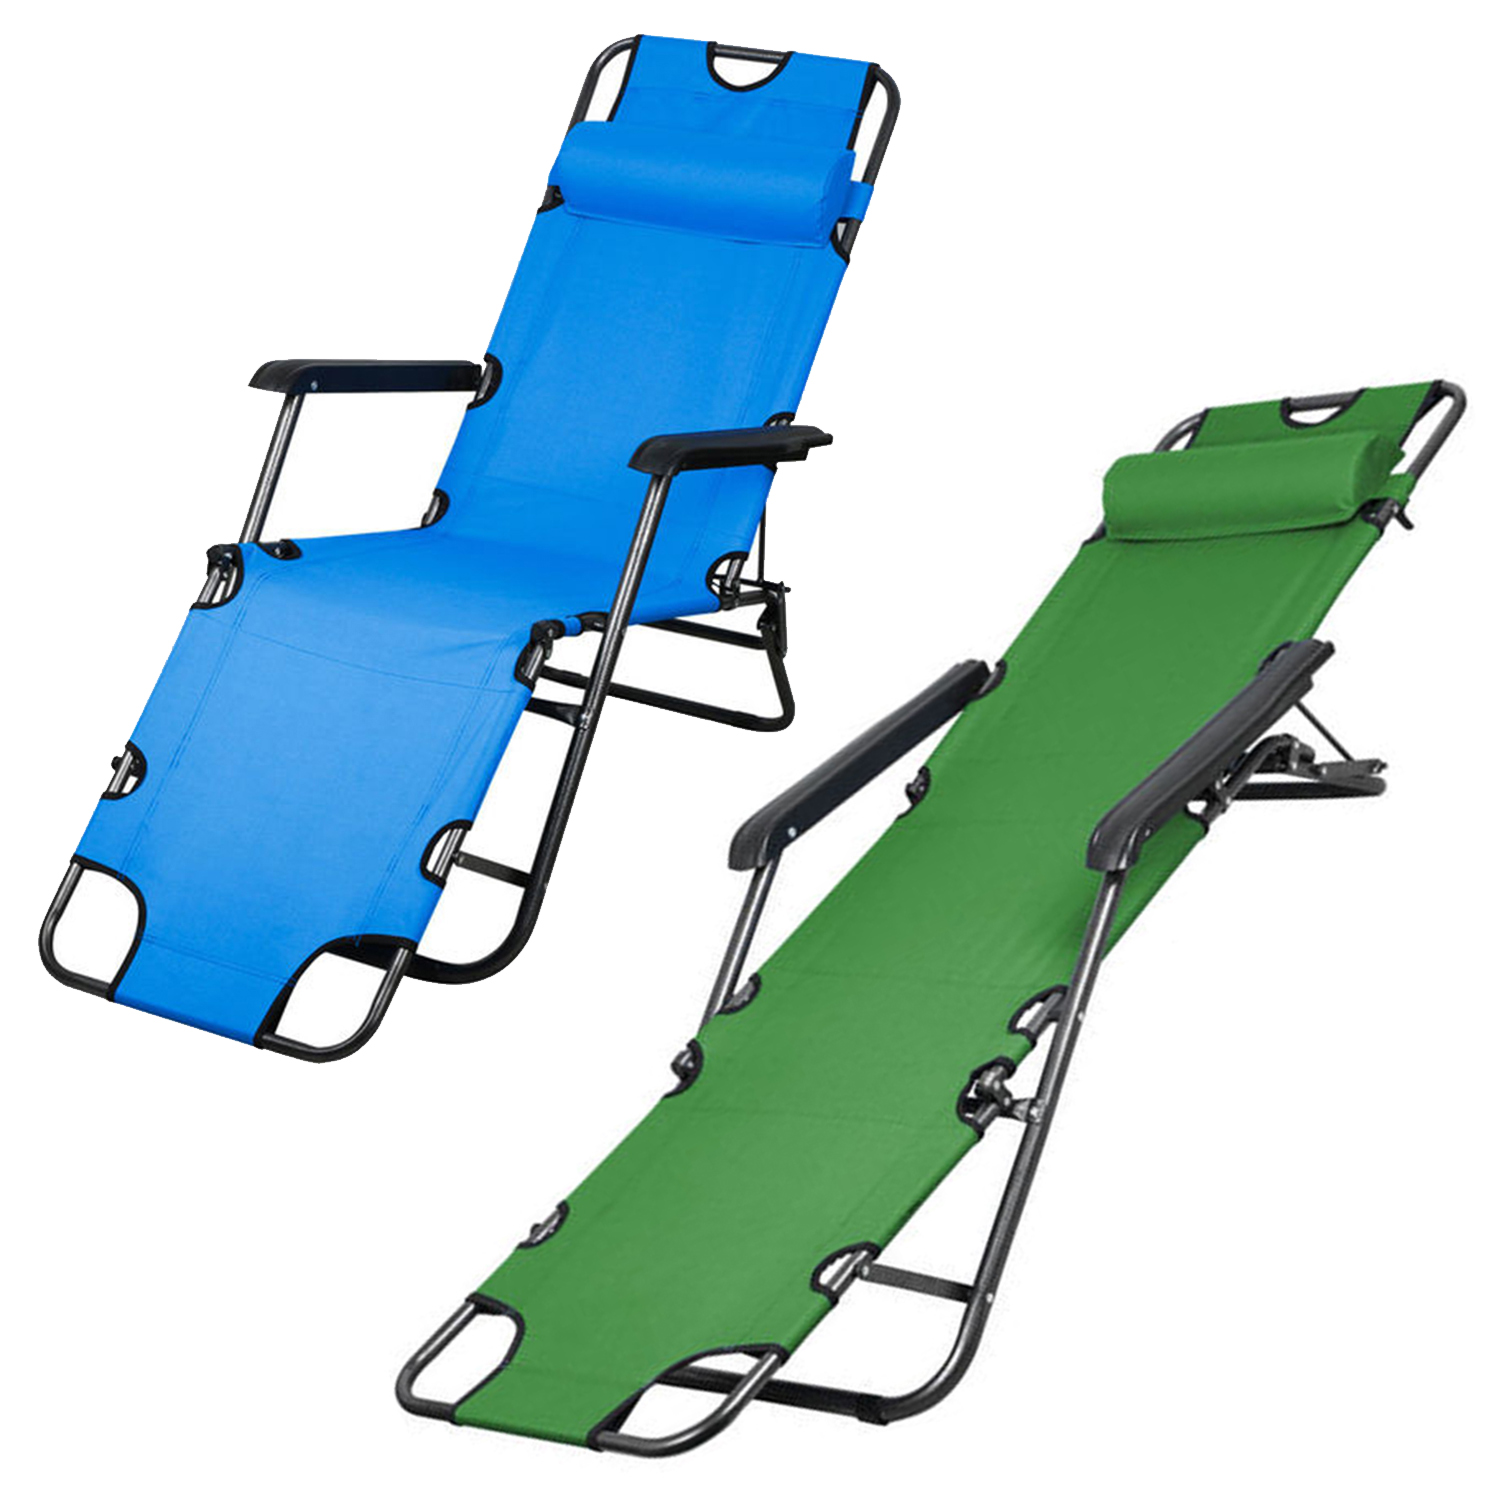 100 brand new foldable recliner with metal frame great for use in the garden patio pool side office beach or for camping sunbathing etc - Outdoor Recliner Chair